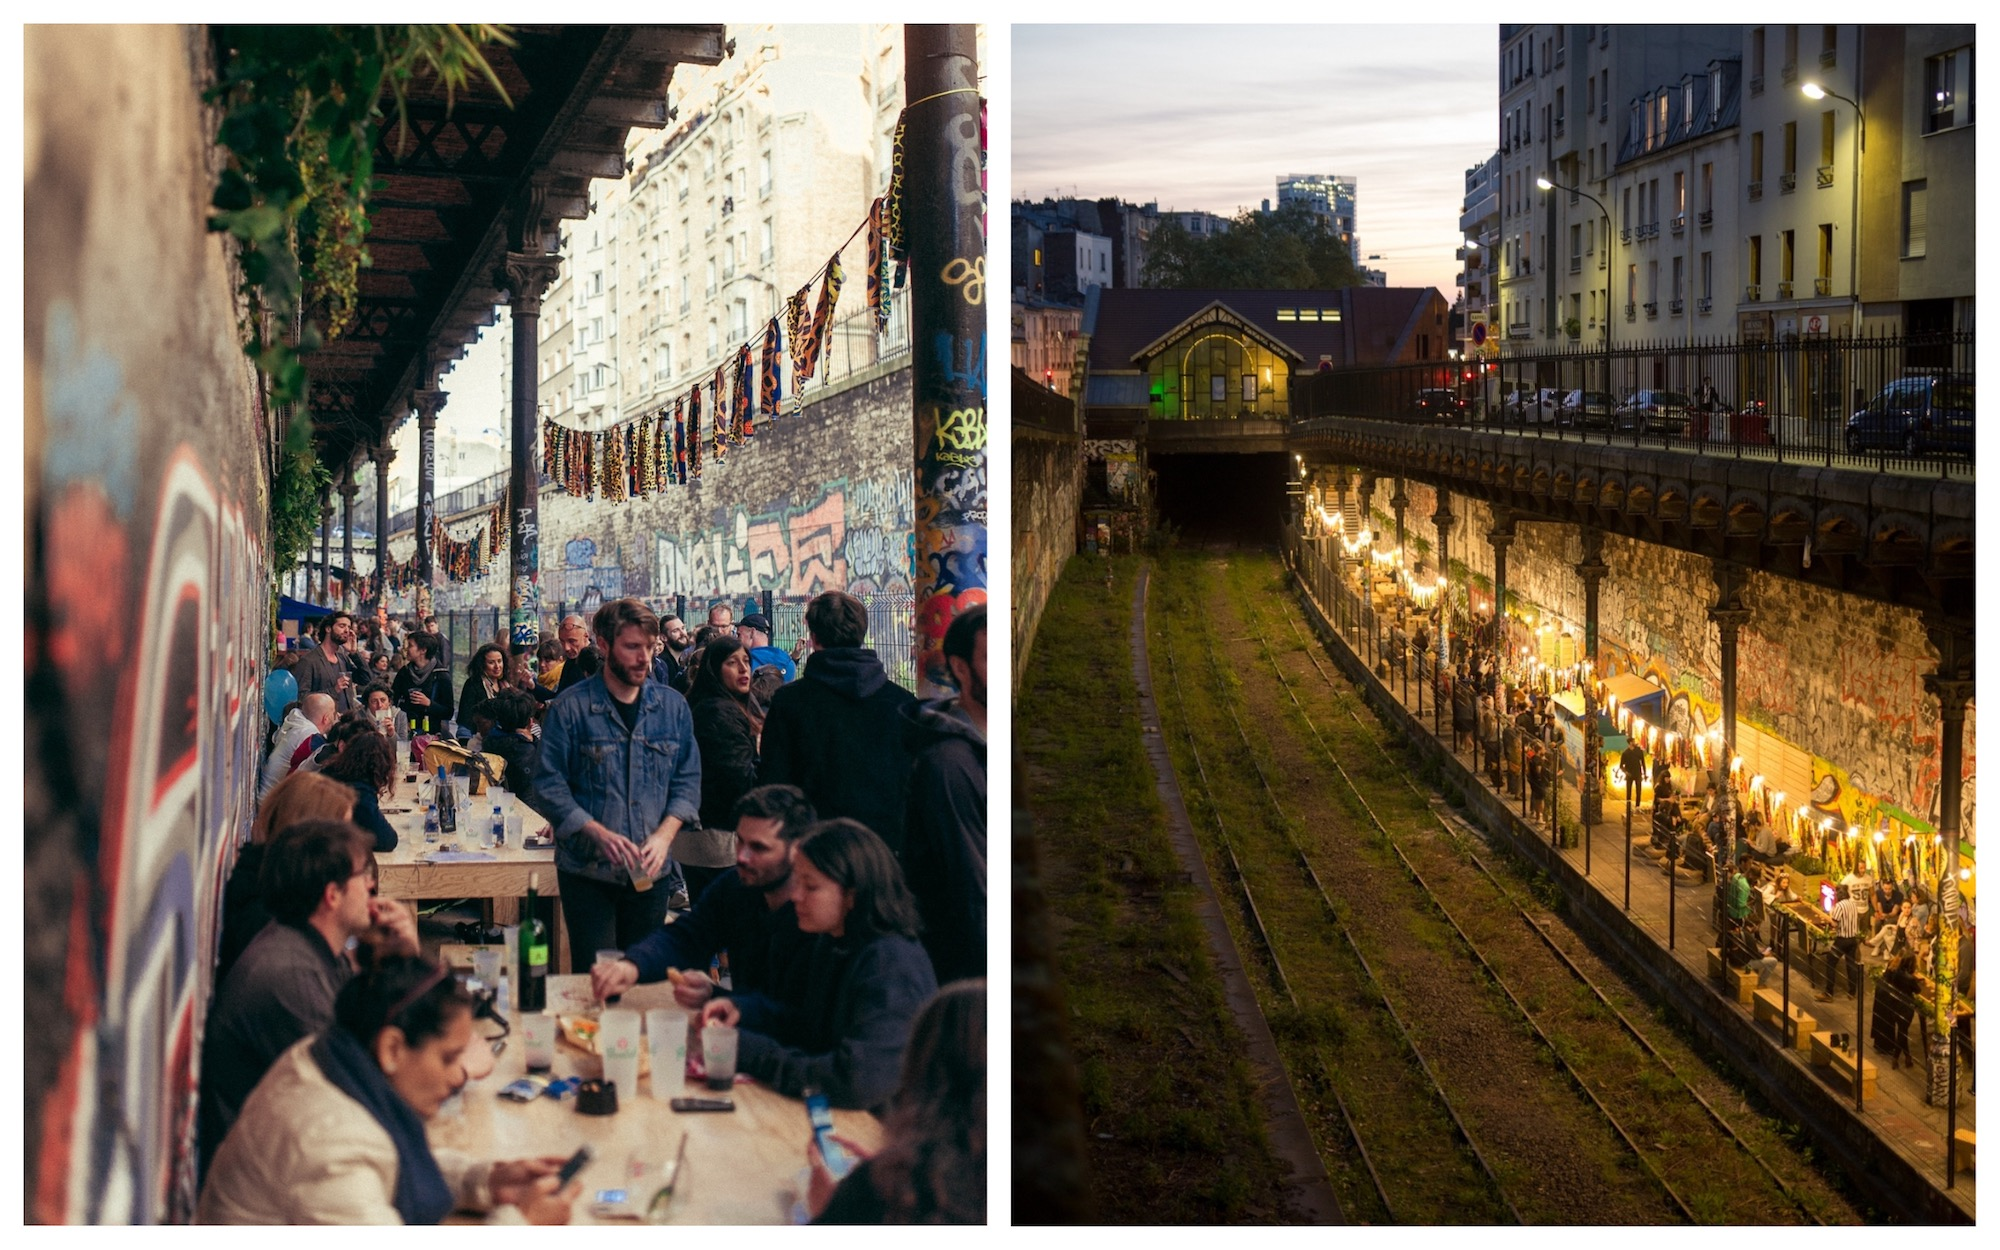 People having drinks on the terrace of Paris bar le Hasard Ludique, on the old platform of an abandoned train station (left). View from the street of the terrace lit up at night down by the disused railway (right).